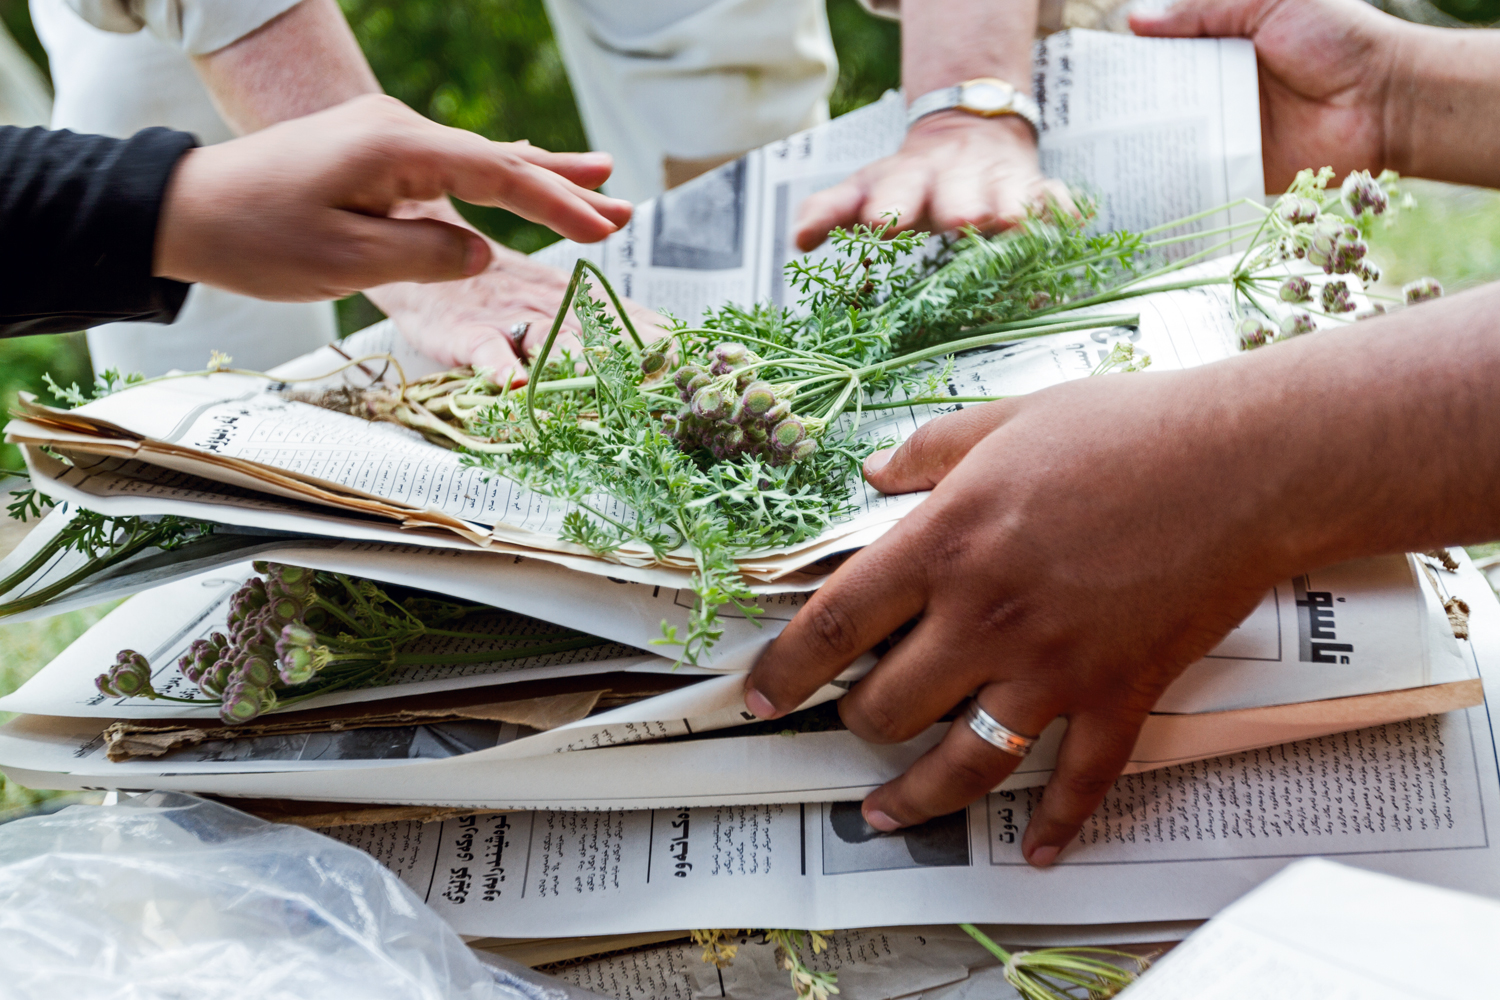 Volunteers and scientists press specimens collected in the mountains near Iran for a 'Flora of Iraq'. While training locals to identify native plants, botanists from Nature Iraq are meanwhile creating the first comprehensive documentation of local flora.